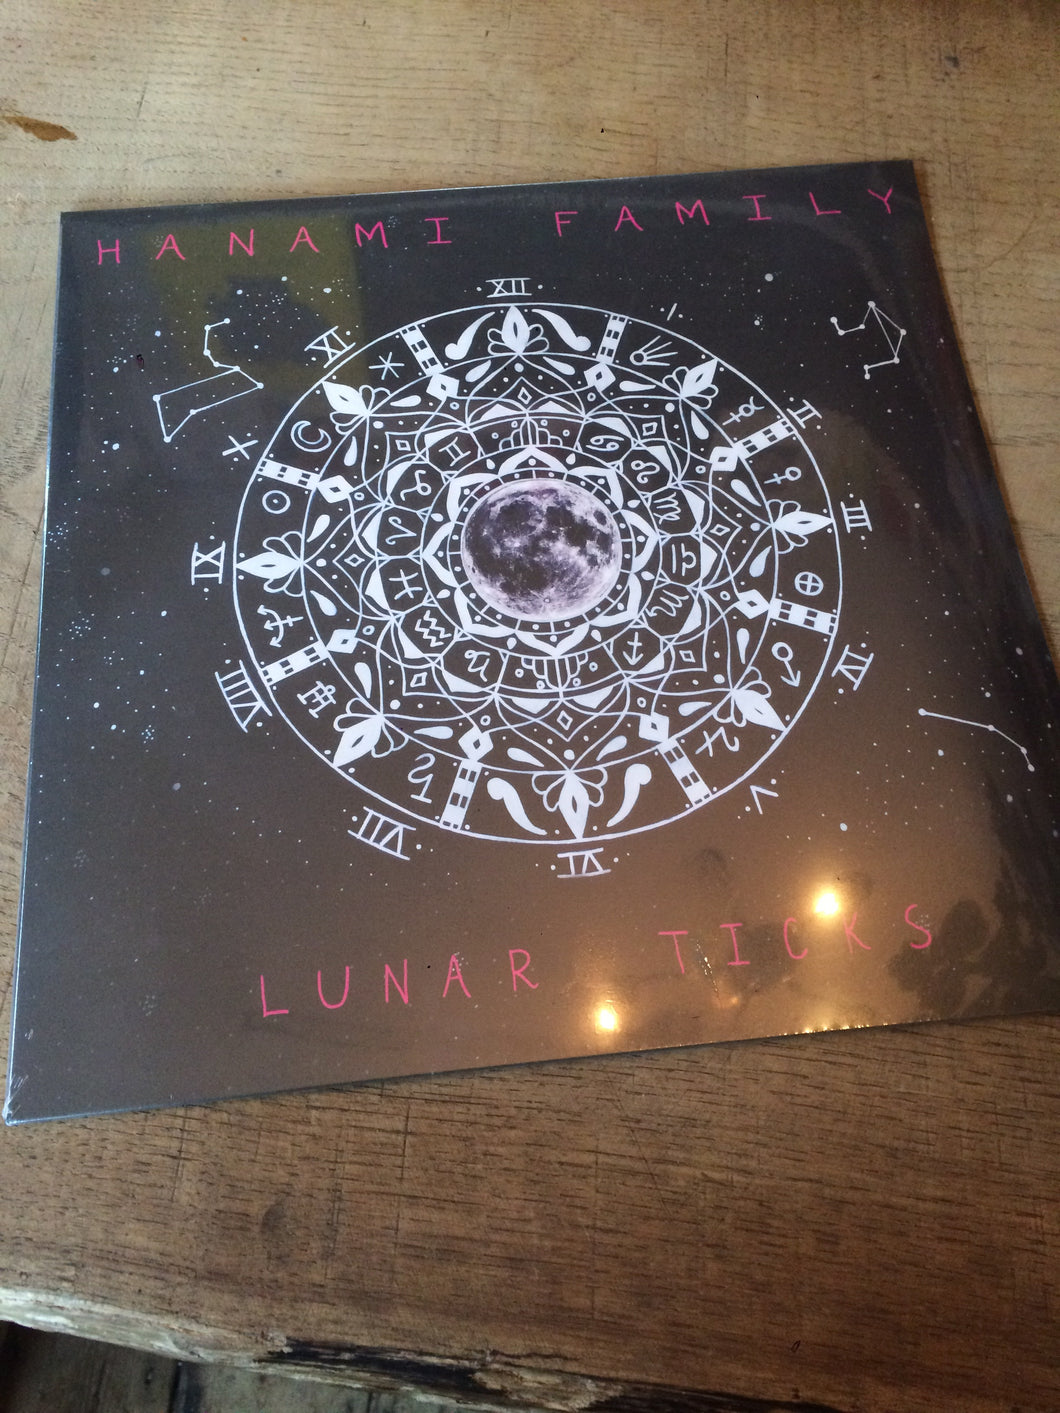 Hanami - Lunar Ticks